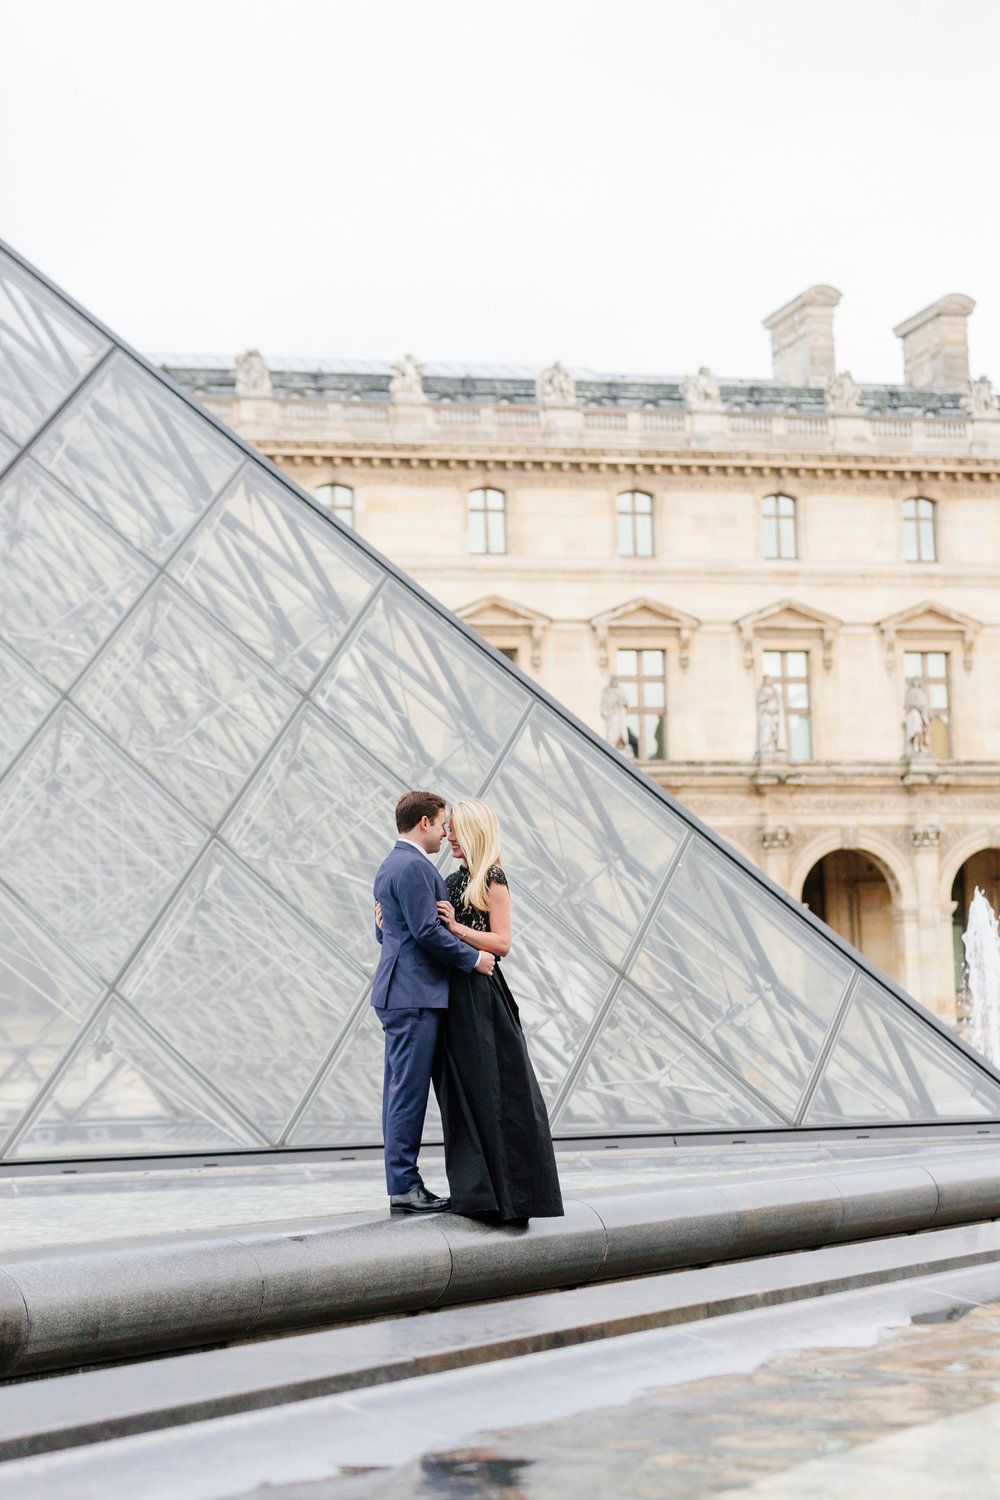 Paris vacation couple portrait standing by the Louvre Museum Pyramid captured by Paris Photographer Federico Guendel www.iheartparis.fr